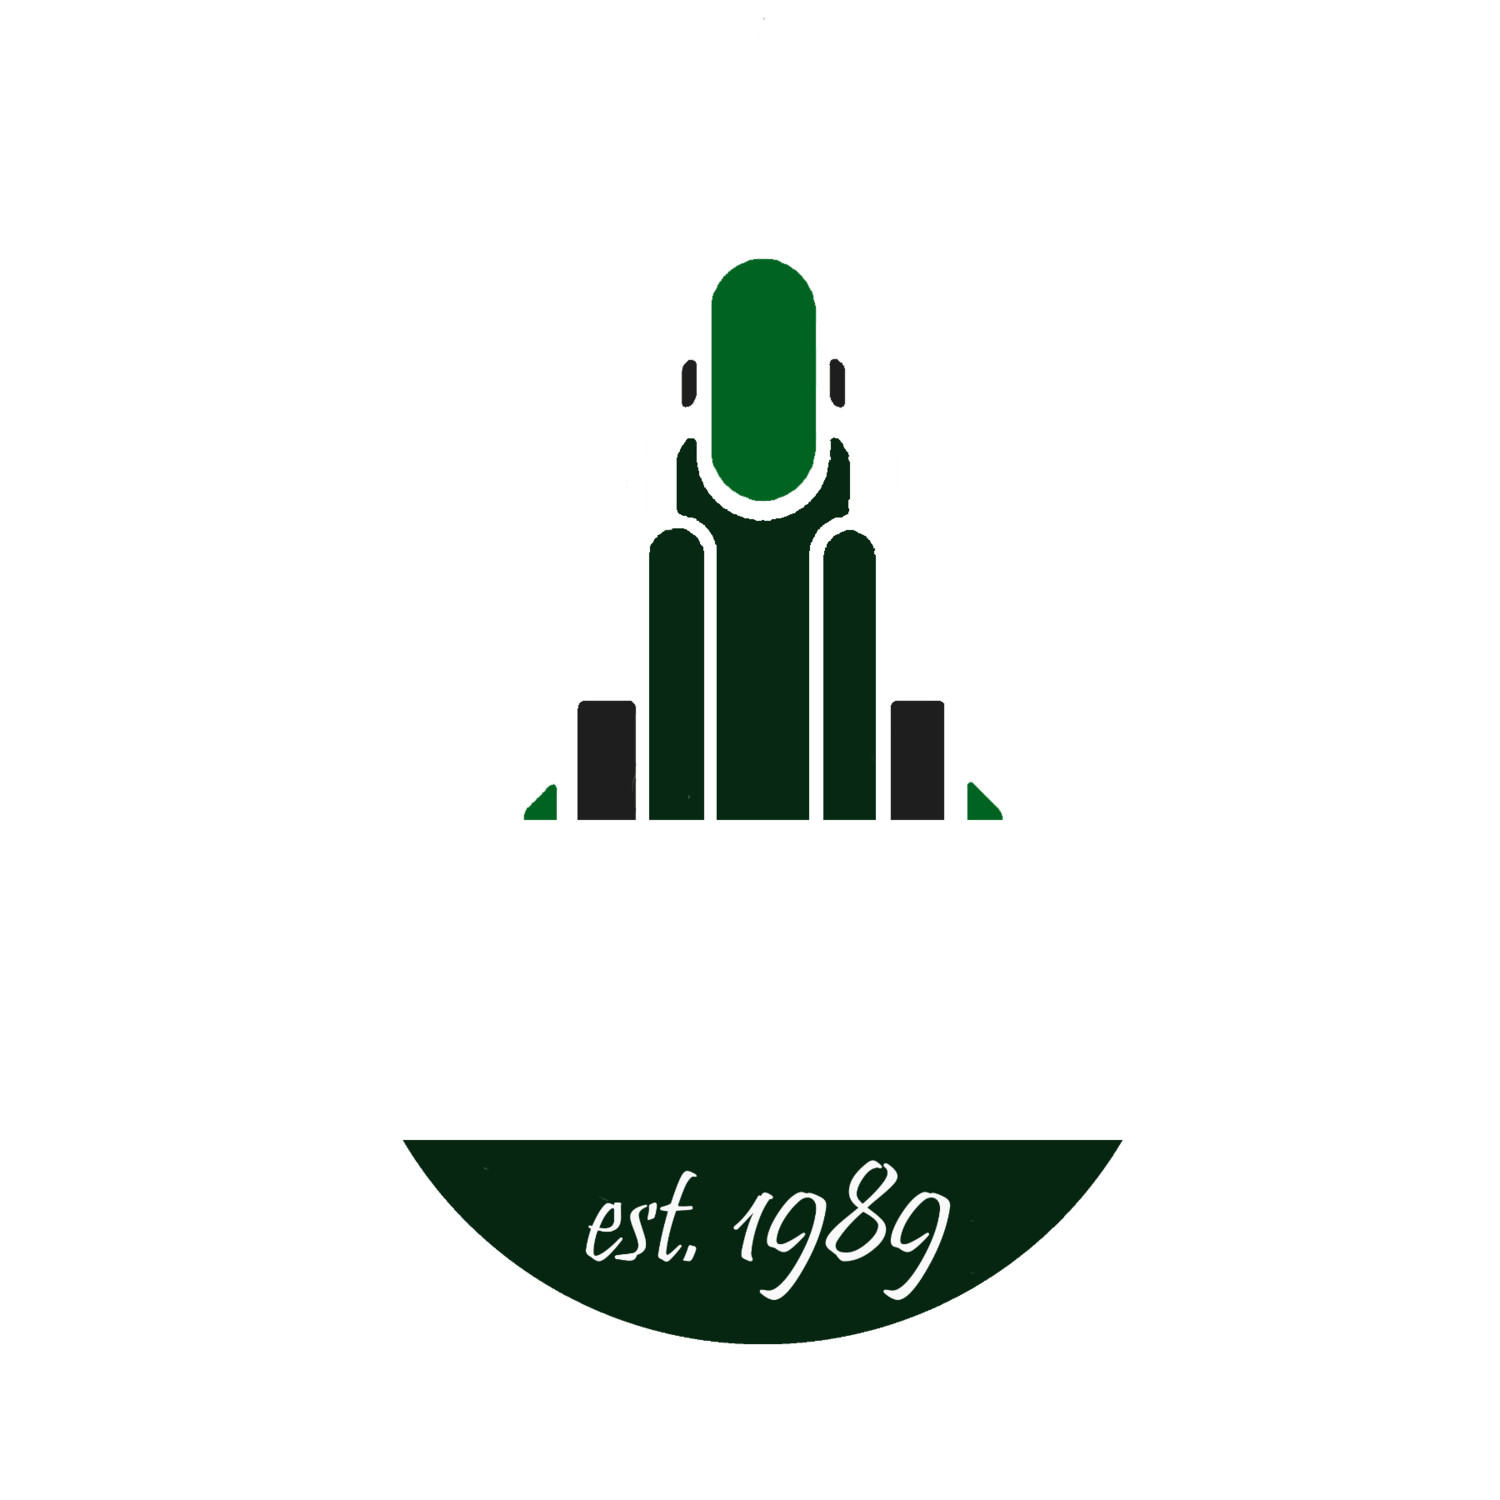 Florida State Progressive Black Men Inc.